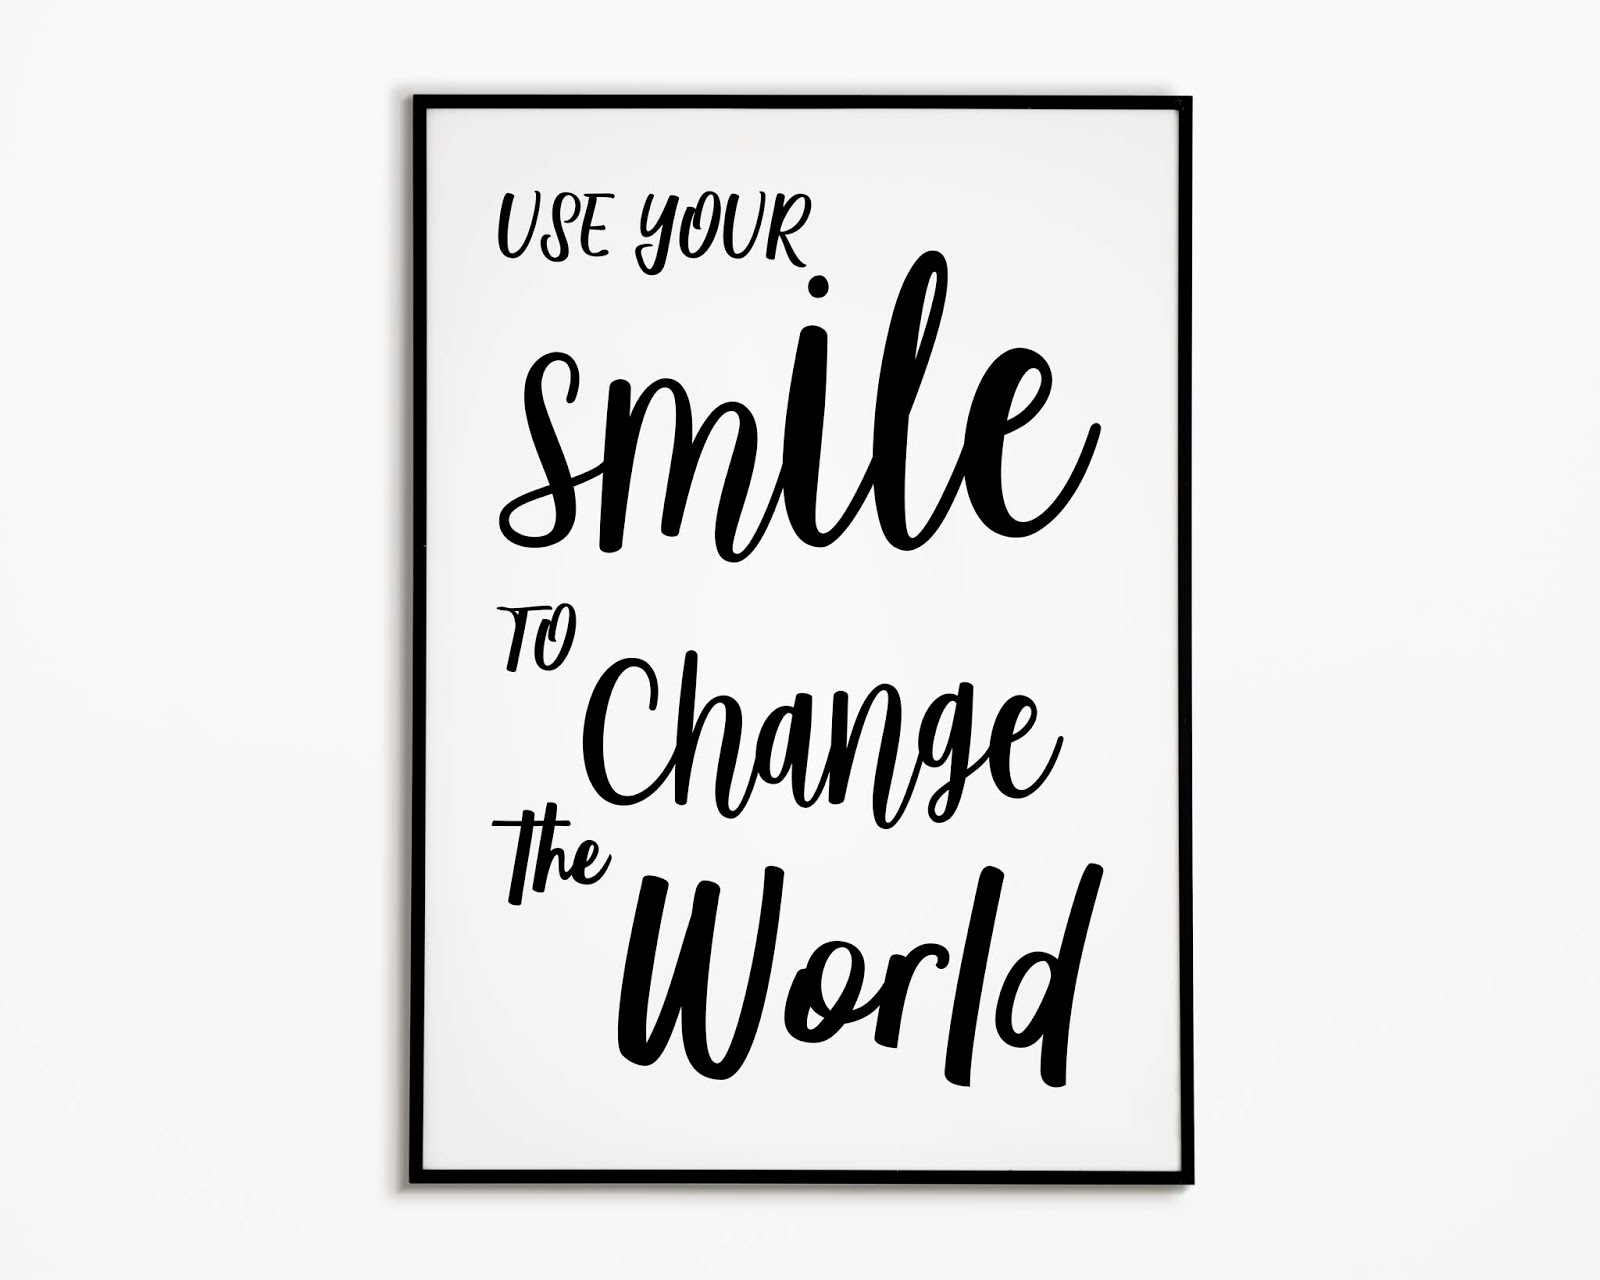 photo regarding Printable Smile identified as Employ the service of Your Smile in direction of Difference the Worldwide Printable Wall Artwork